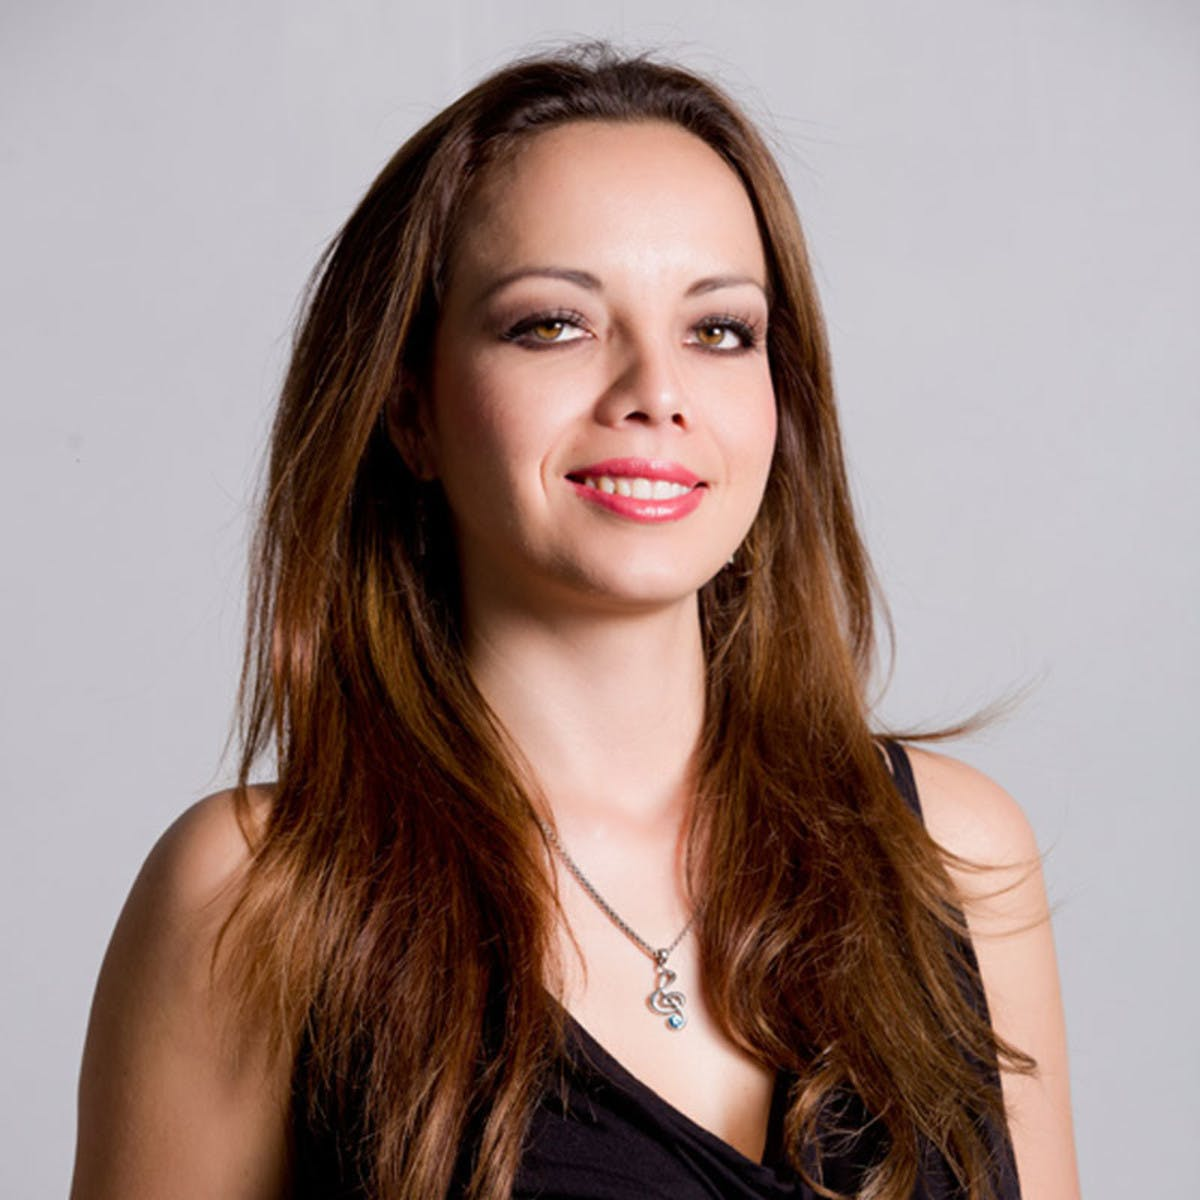 Erika Dipp - Certified IVA Teacher, Mexico City